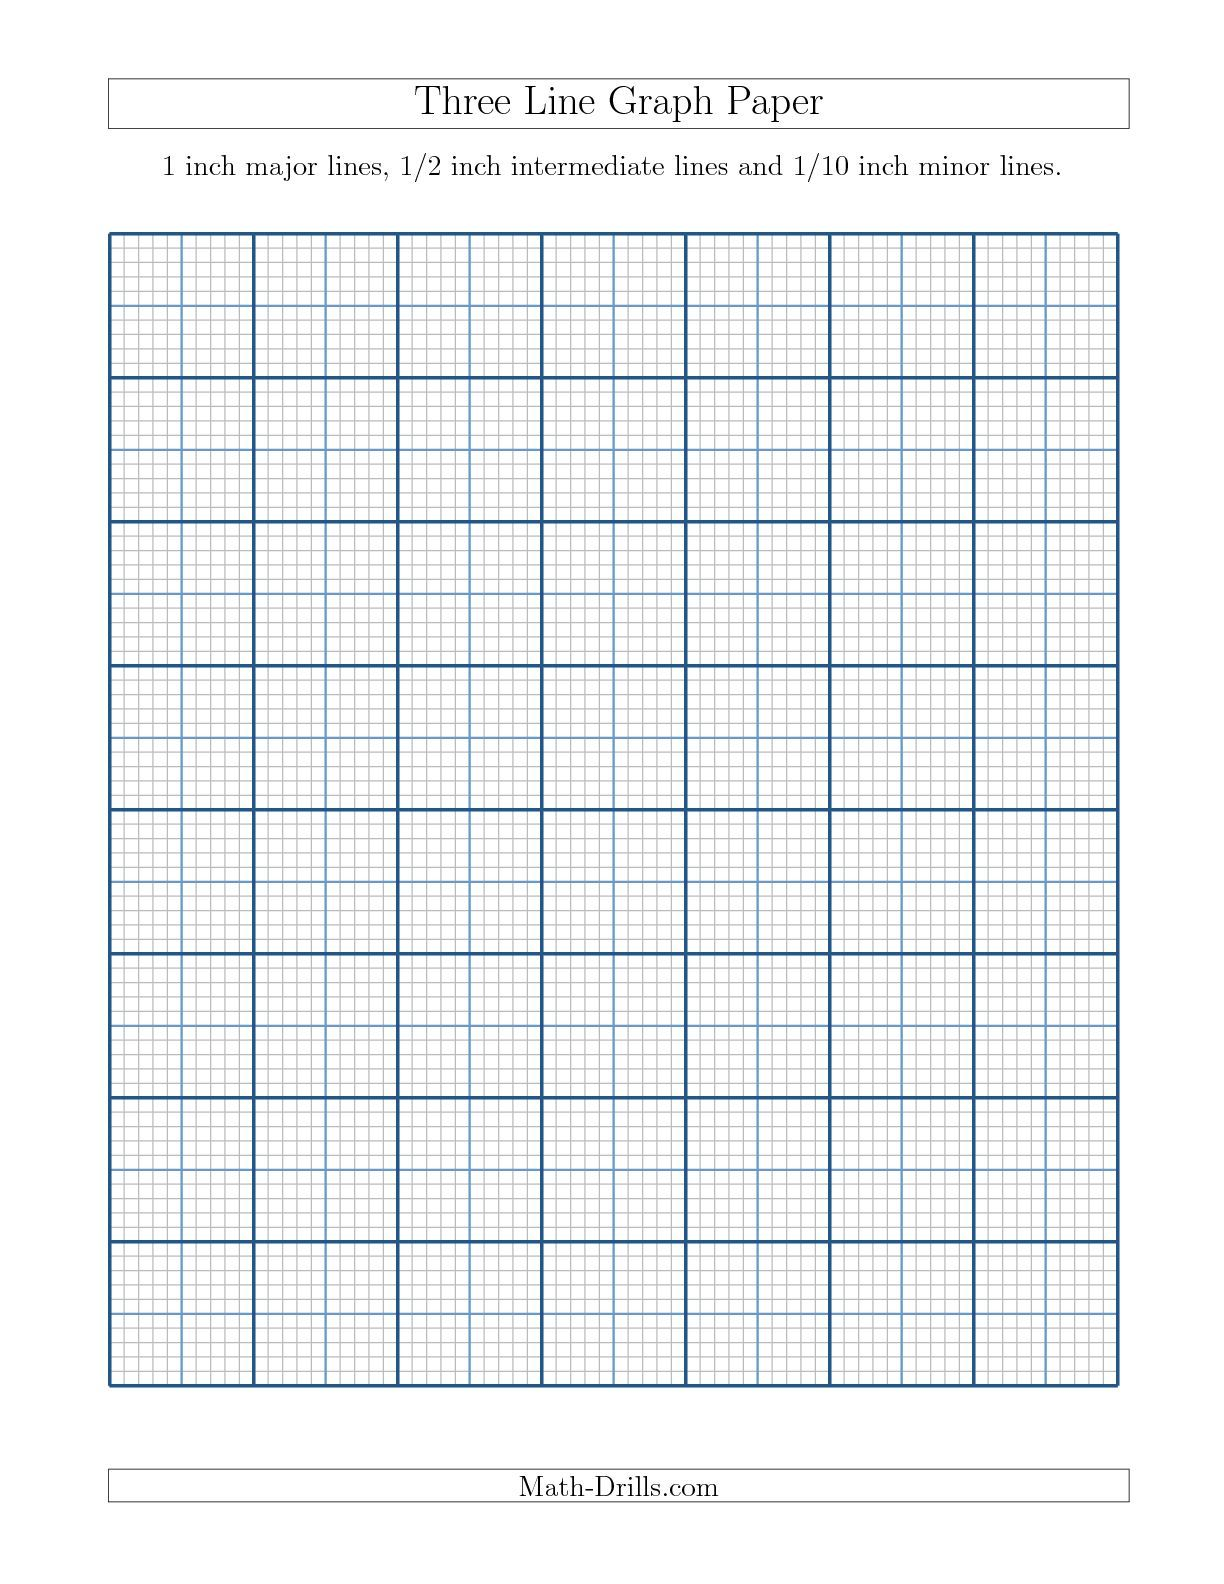 New 09 17 Three Line Graph Paper With 1 Inch Major